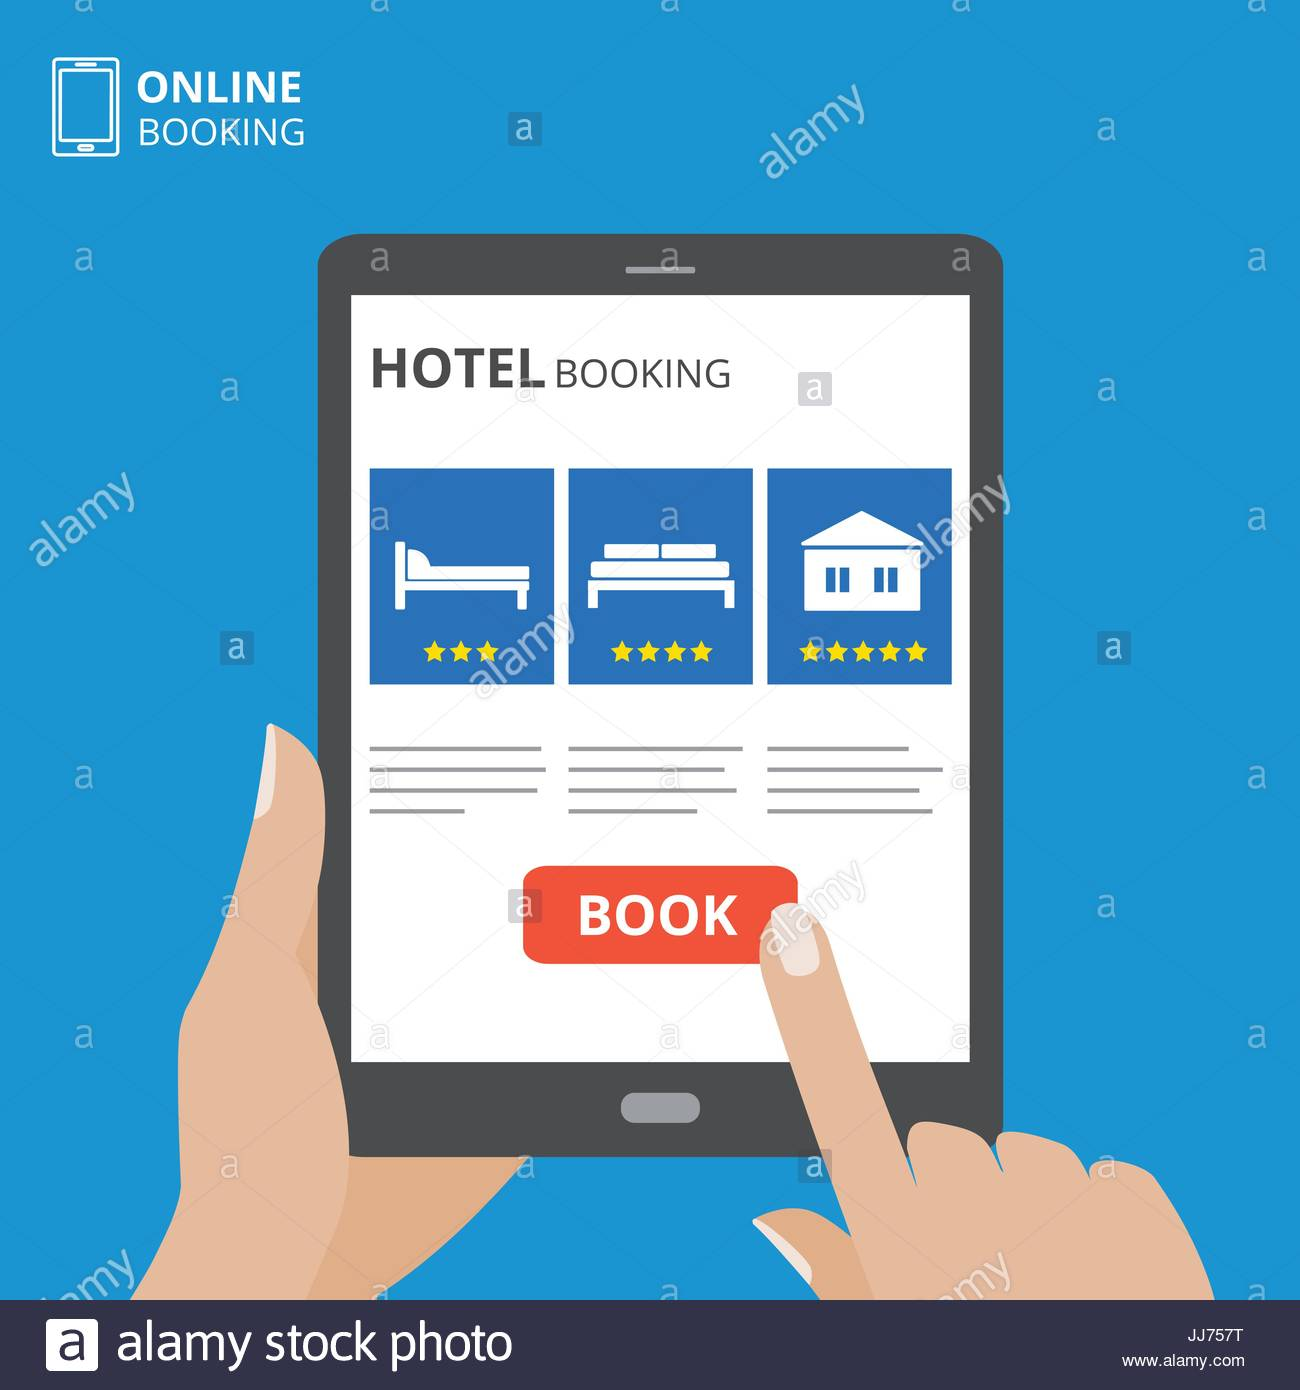 Design concept of hotel booking online. Tablet computer with hand touching a screen. Display with book button and bed icons.